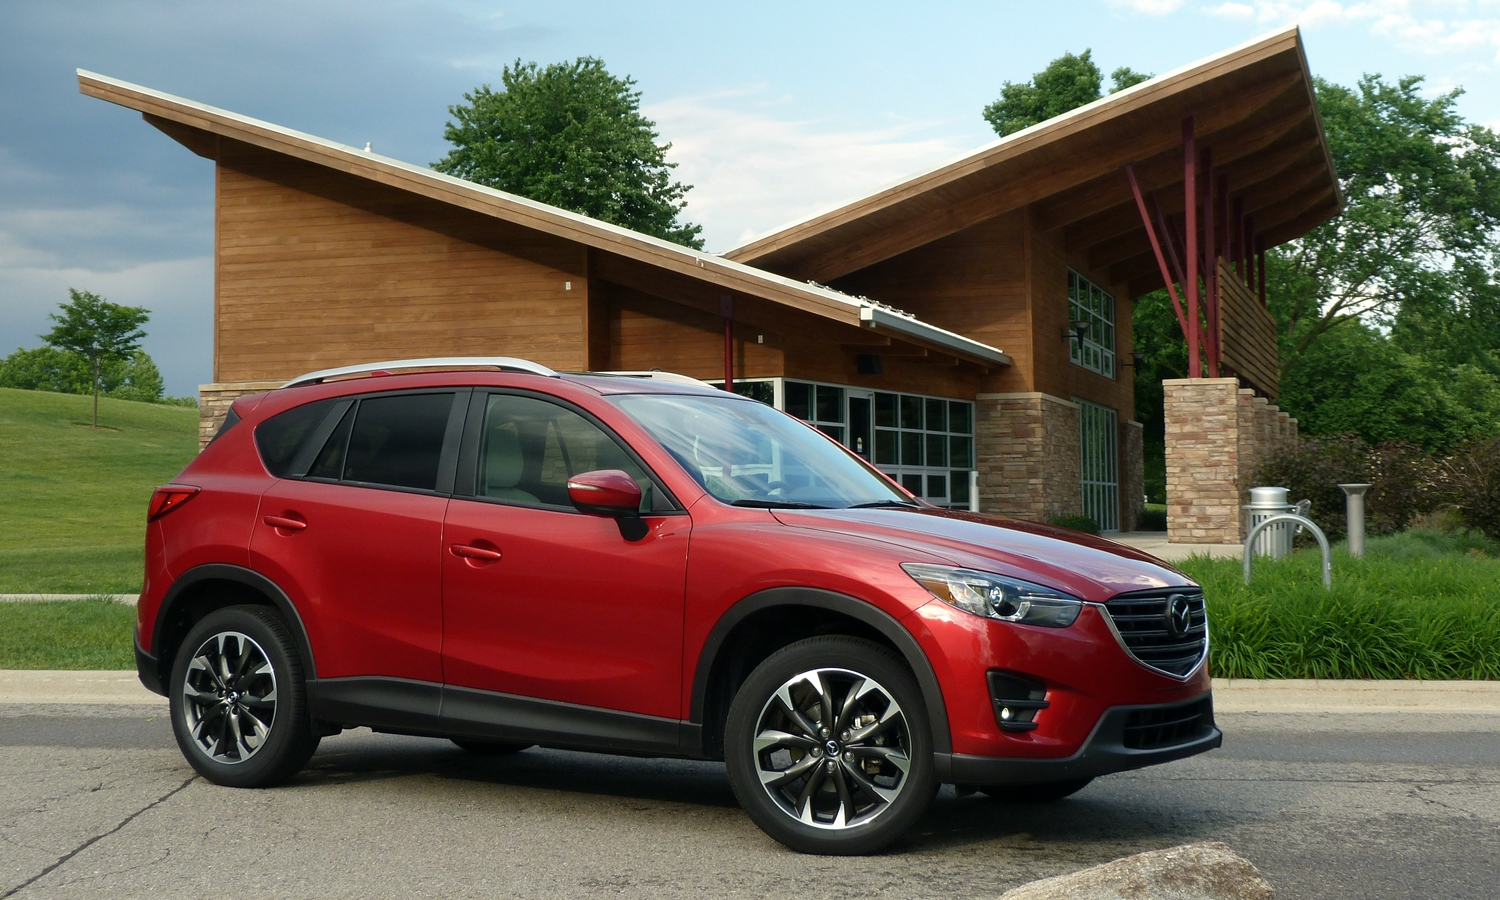 Mazda CX-5 Photos: 2016 Mazda CX-5 front quarter view